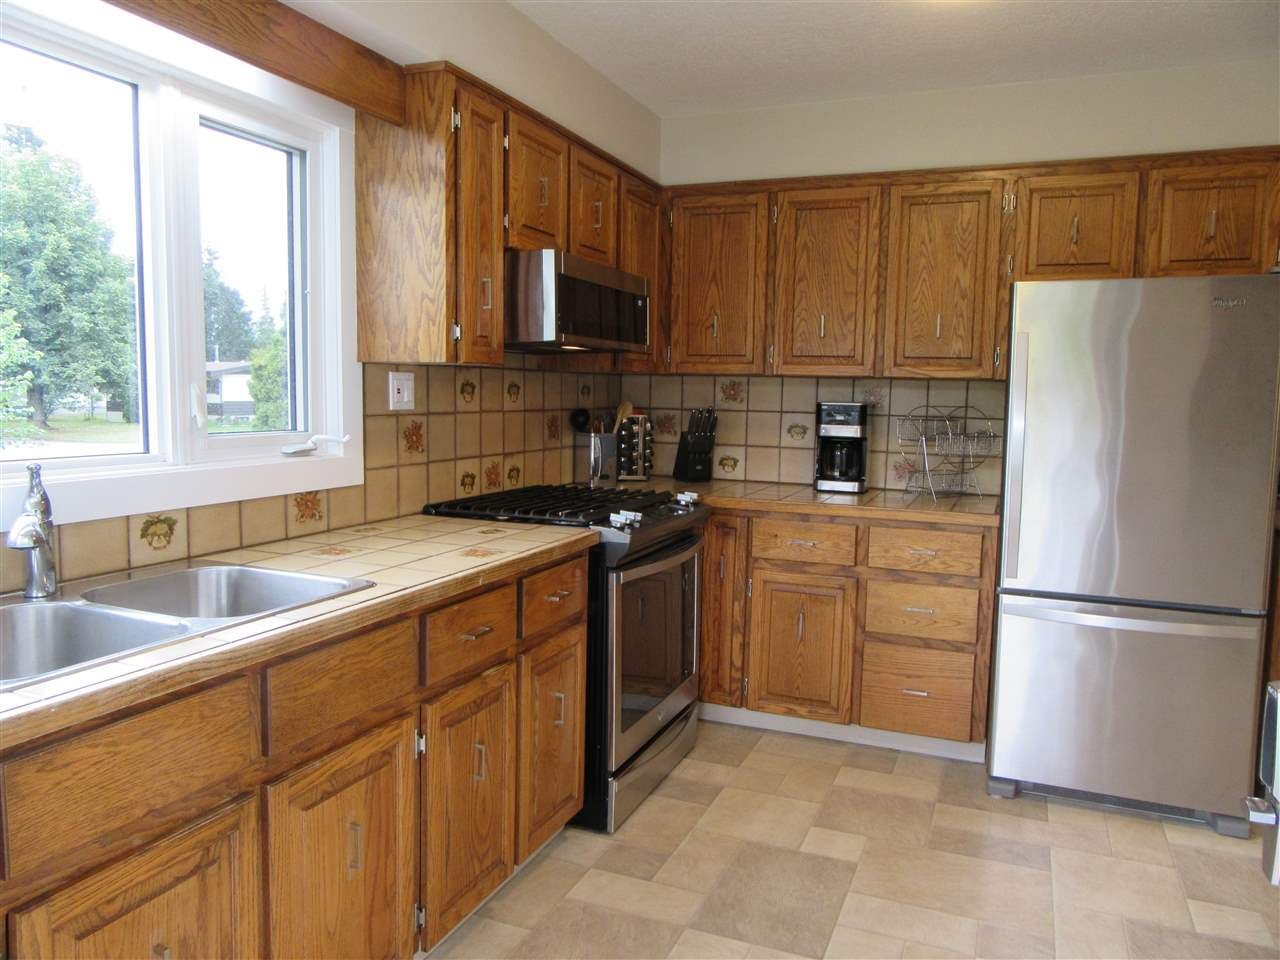 """Photo 26: Photos: 121 FREEMAN Street in Prince George: Nechako View House for sale in """"NECHAKO"""" (PG City Central (Zone 72))  : MLS®# R2493268"""